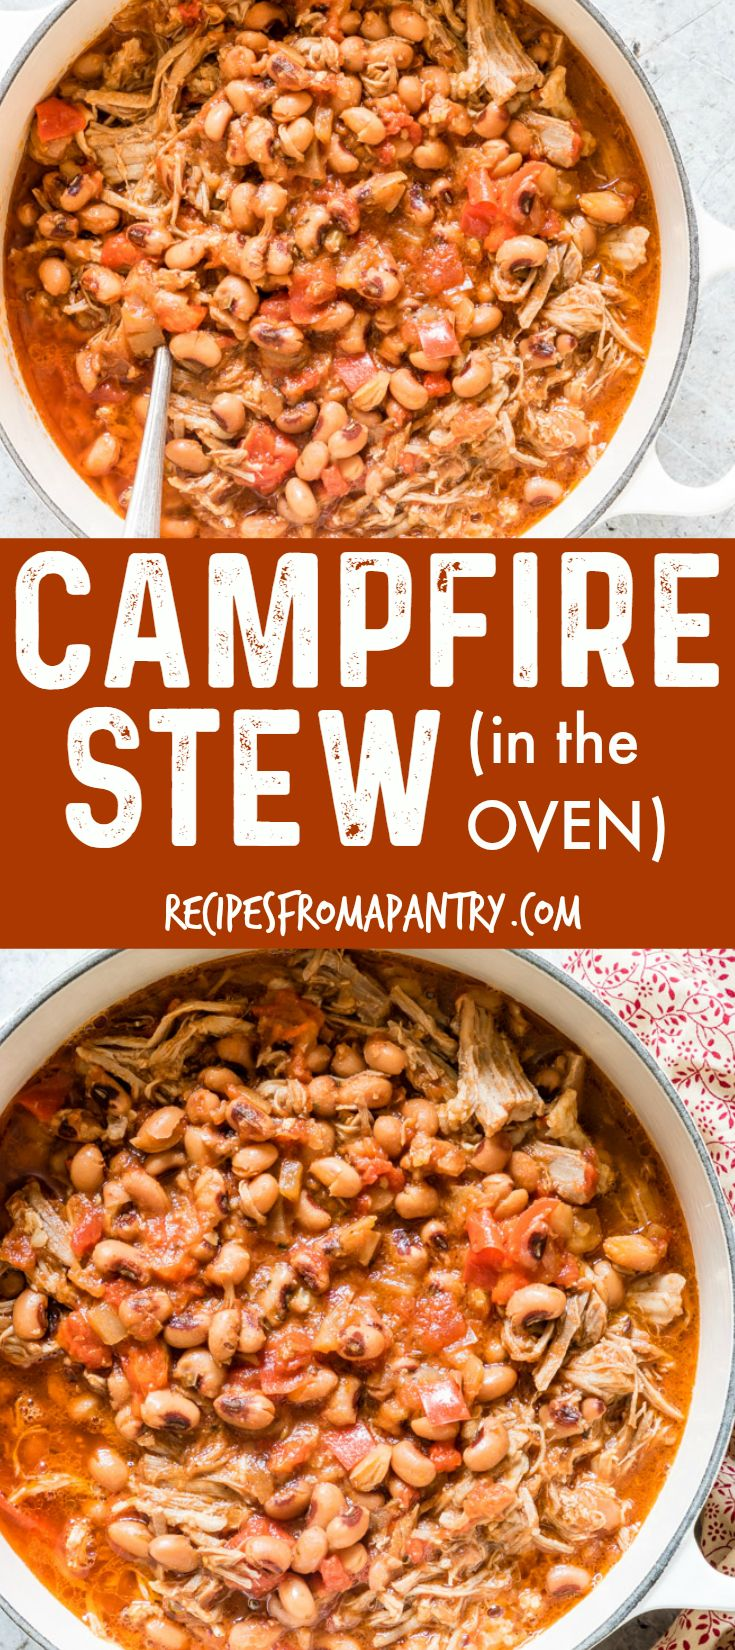 Check out this AMAZING and FLAVOURFUL oven Campfire Stew recipe! You'll learn how to make Oven Campfire Stew as well as Slow Cooker Campfire Stew, Instant Pot Campfire Stew, and of course Campfire Stew on the campfire. A hearty and easy stew recipe from Recipes from a Pantry. #campfirestew #instantpot #camping #camprecipes #stew